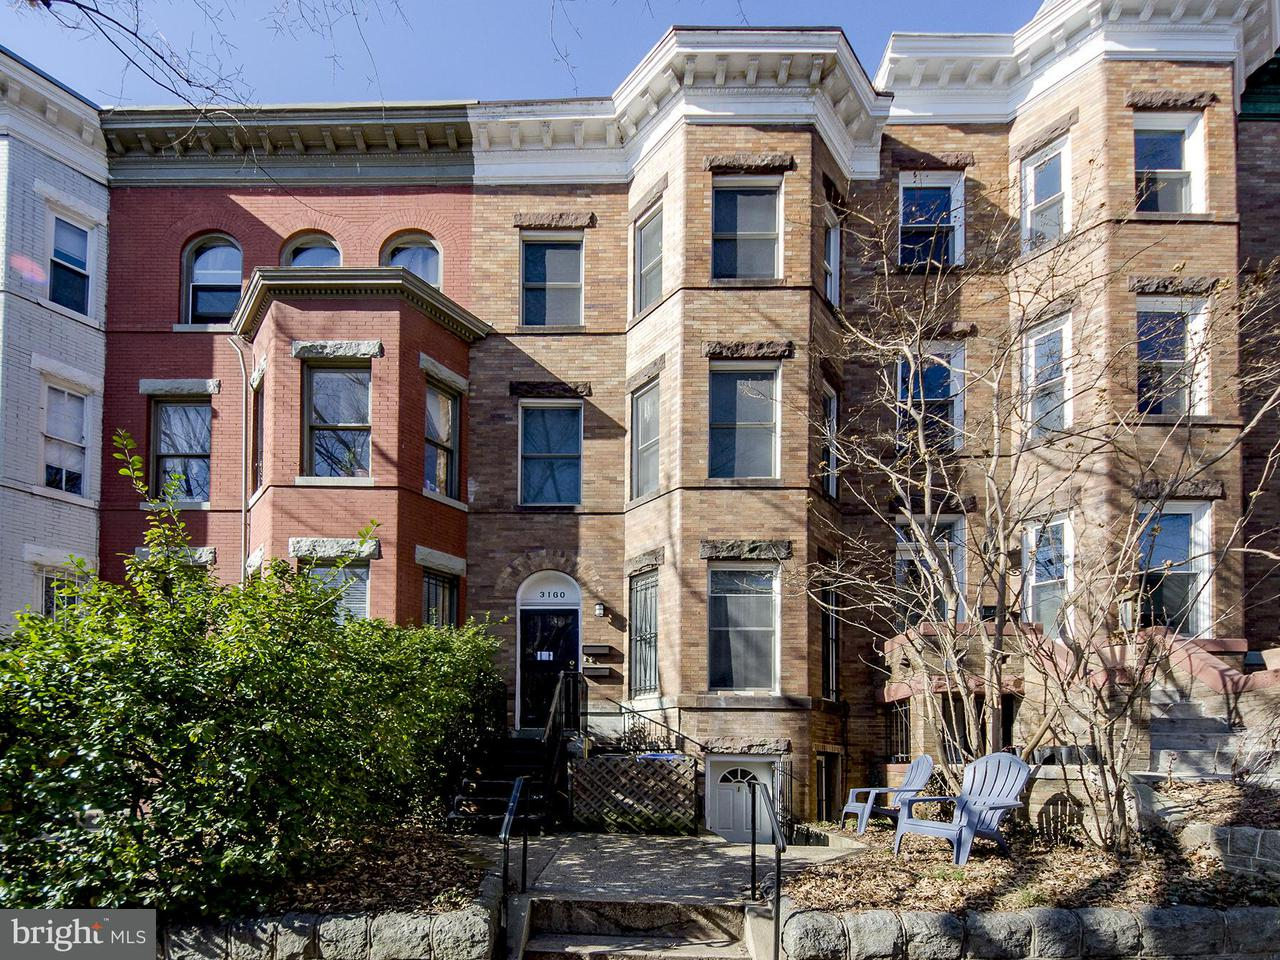 Multi-Family Home for Sale at 3160 18th St Nw 3160 18th St Nw Washington, District Of Columbia 20010 United States